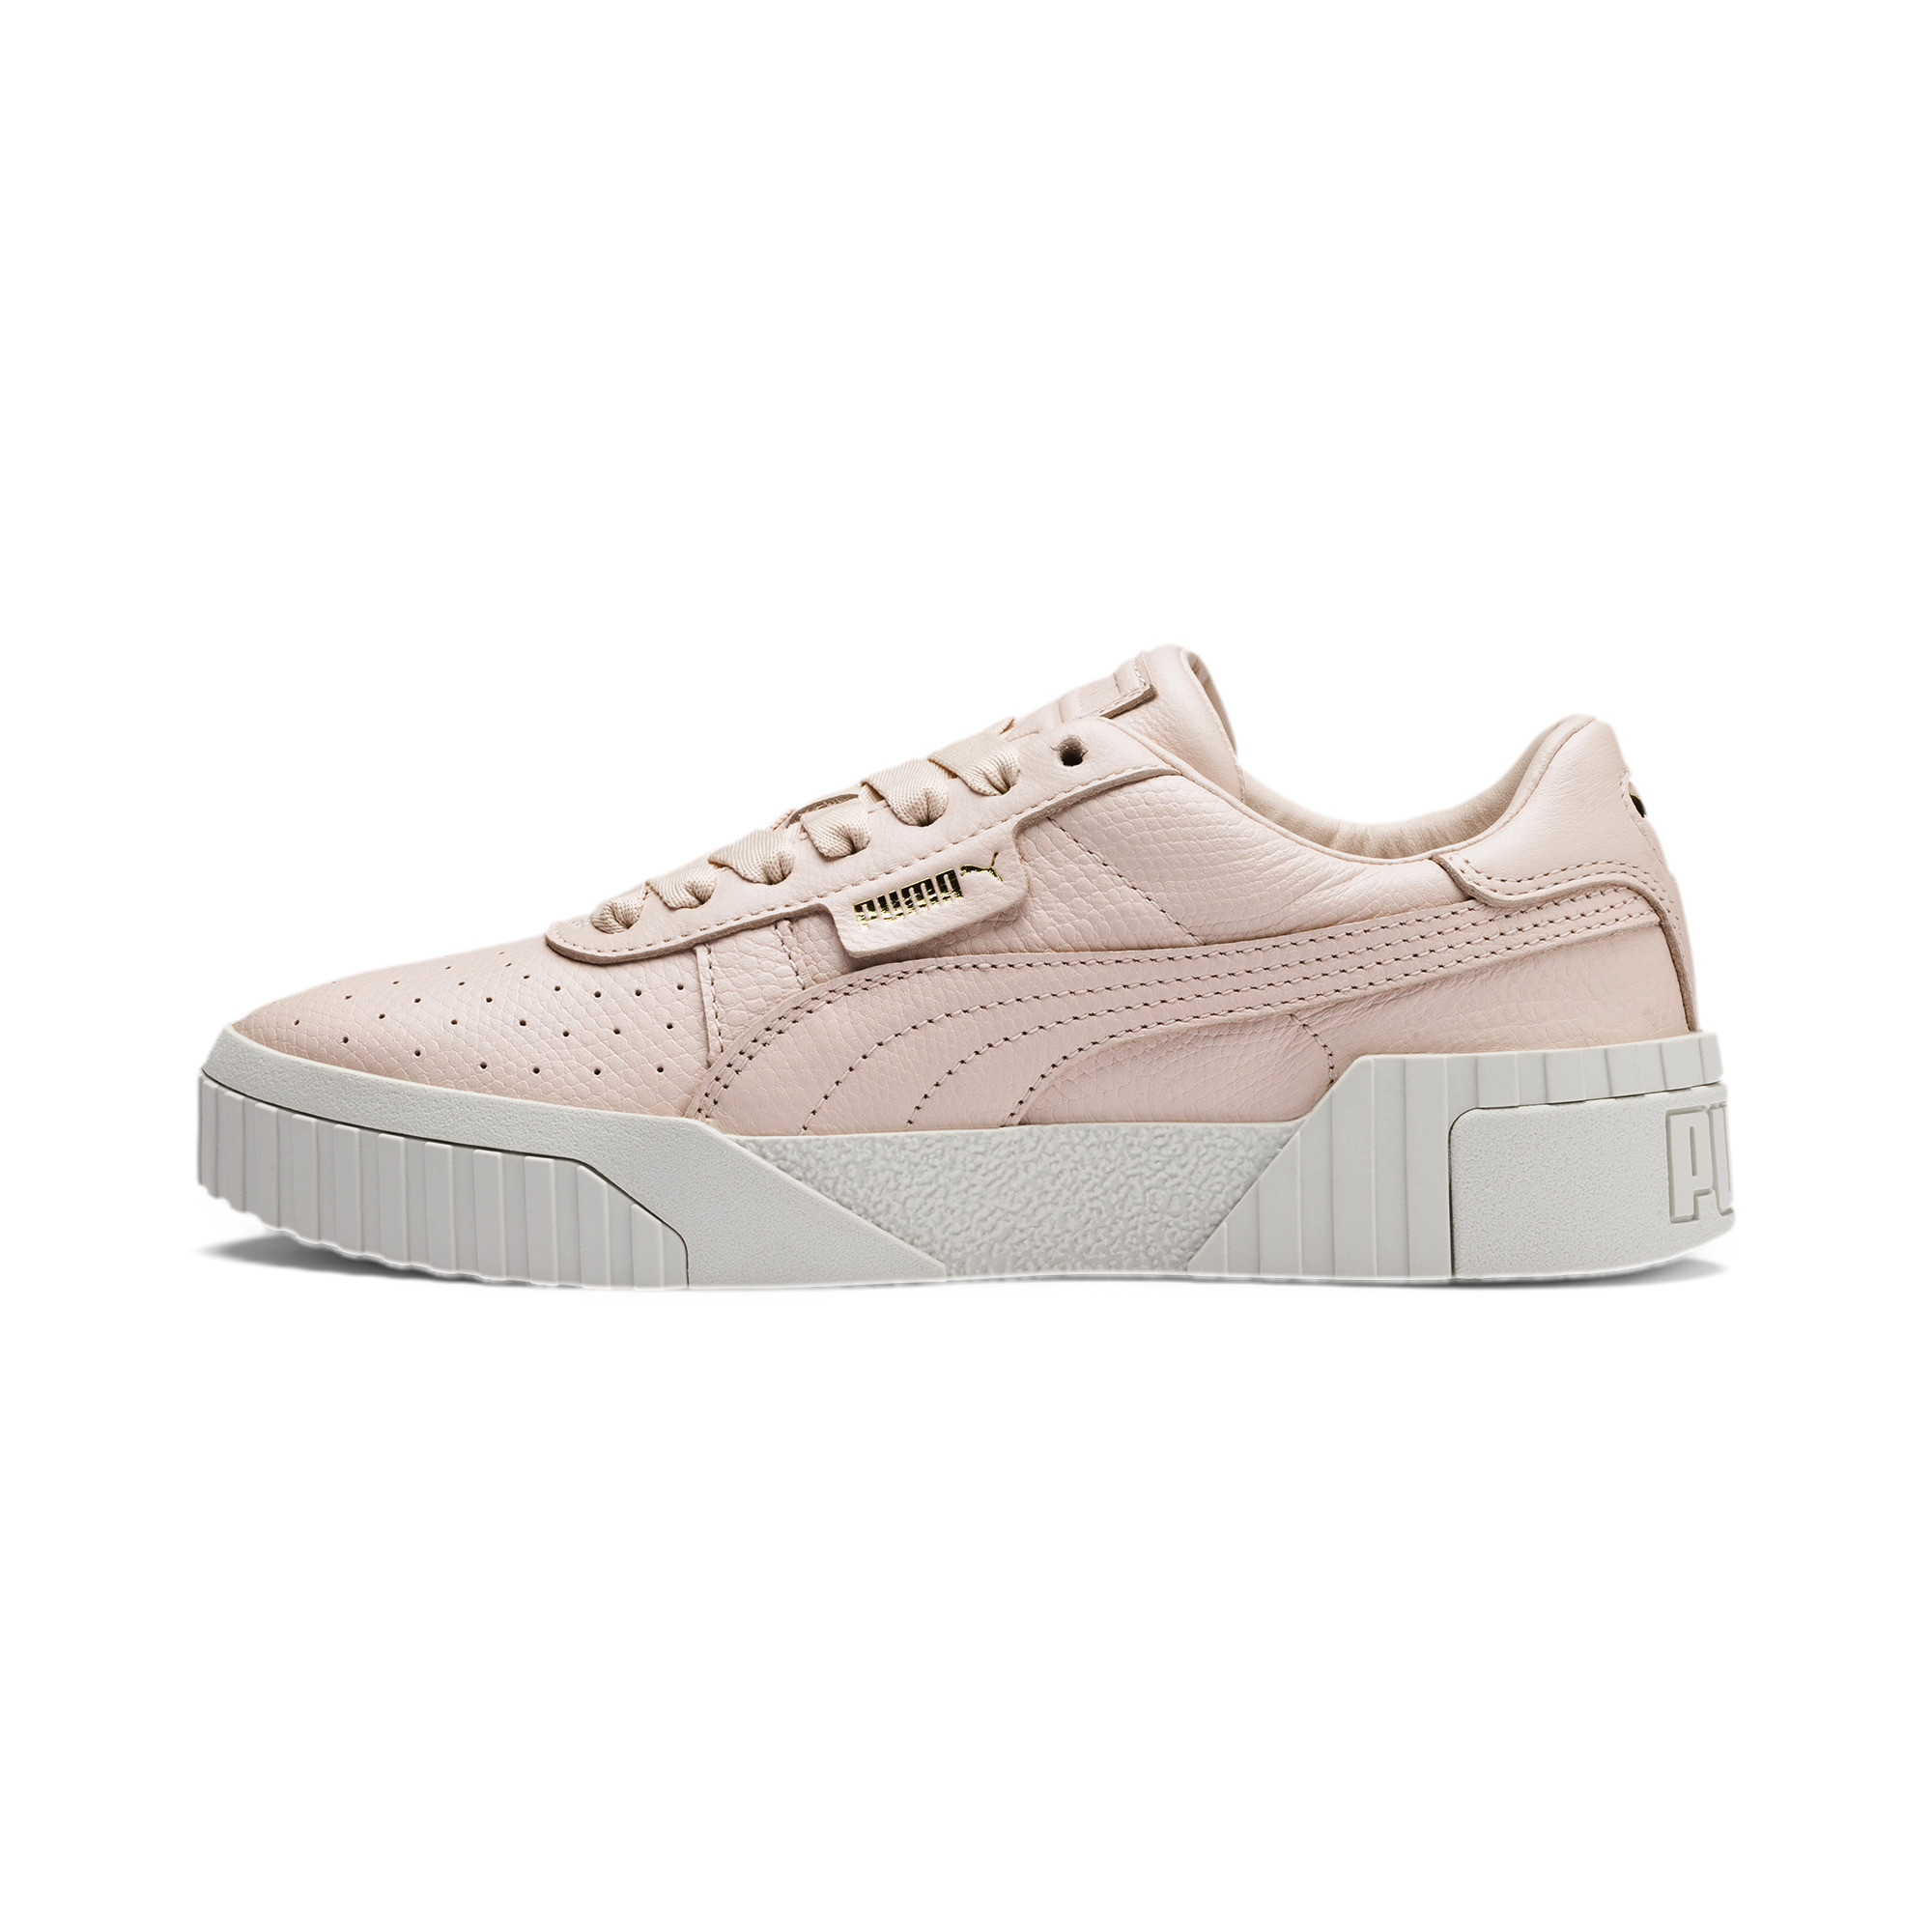 PUMA-Cali-Emboss-Women-039-s-Sneakers-Women-Shoe-Evolution thumbnail 11